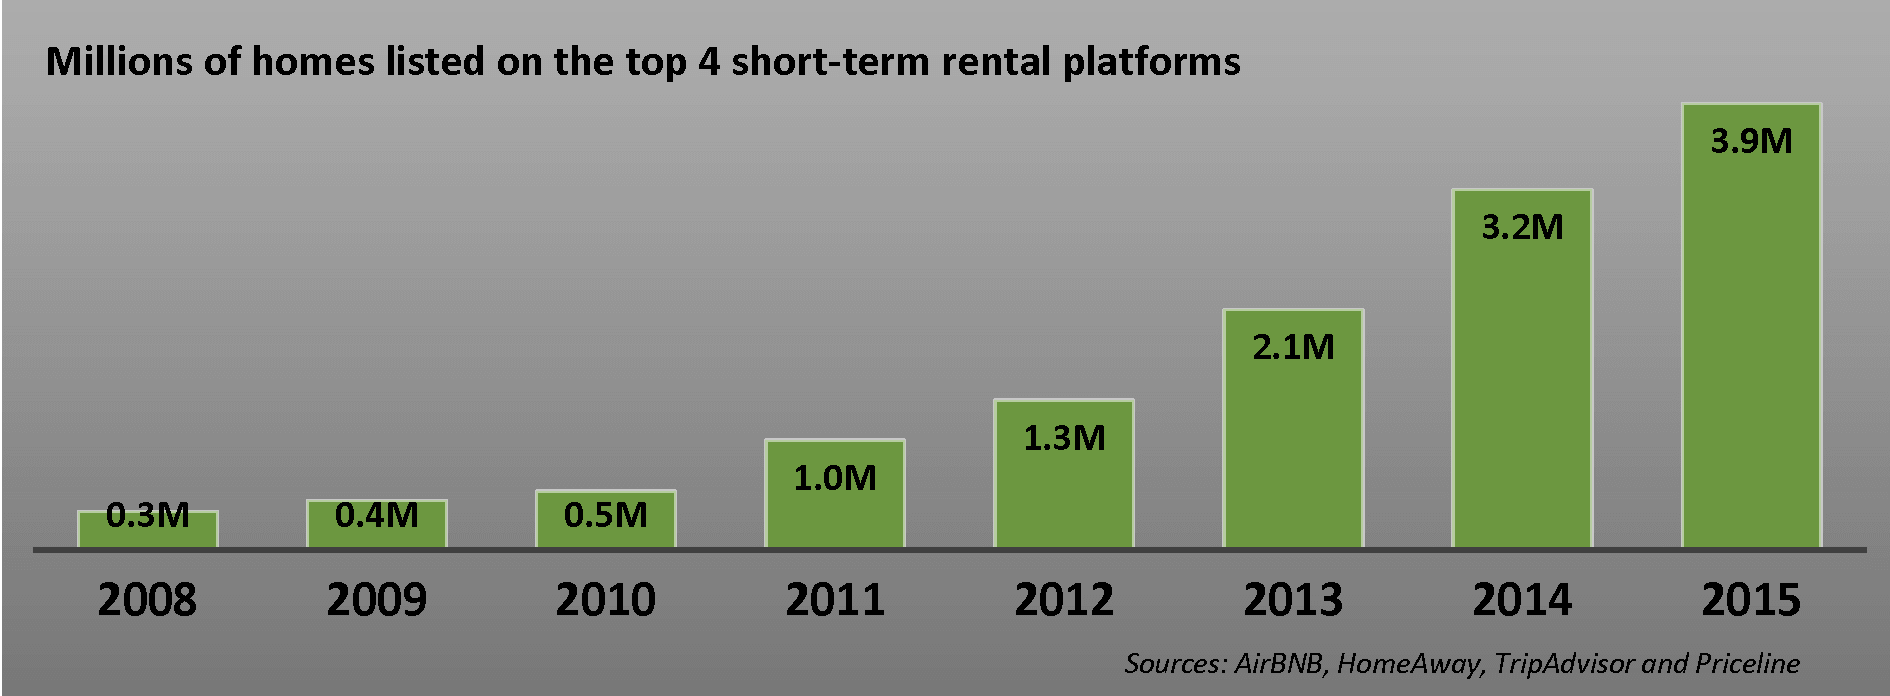 The number of short-term vacation rentals has grown exponentially in the last decade